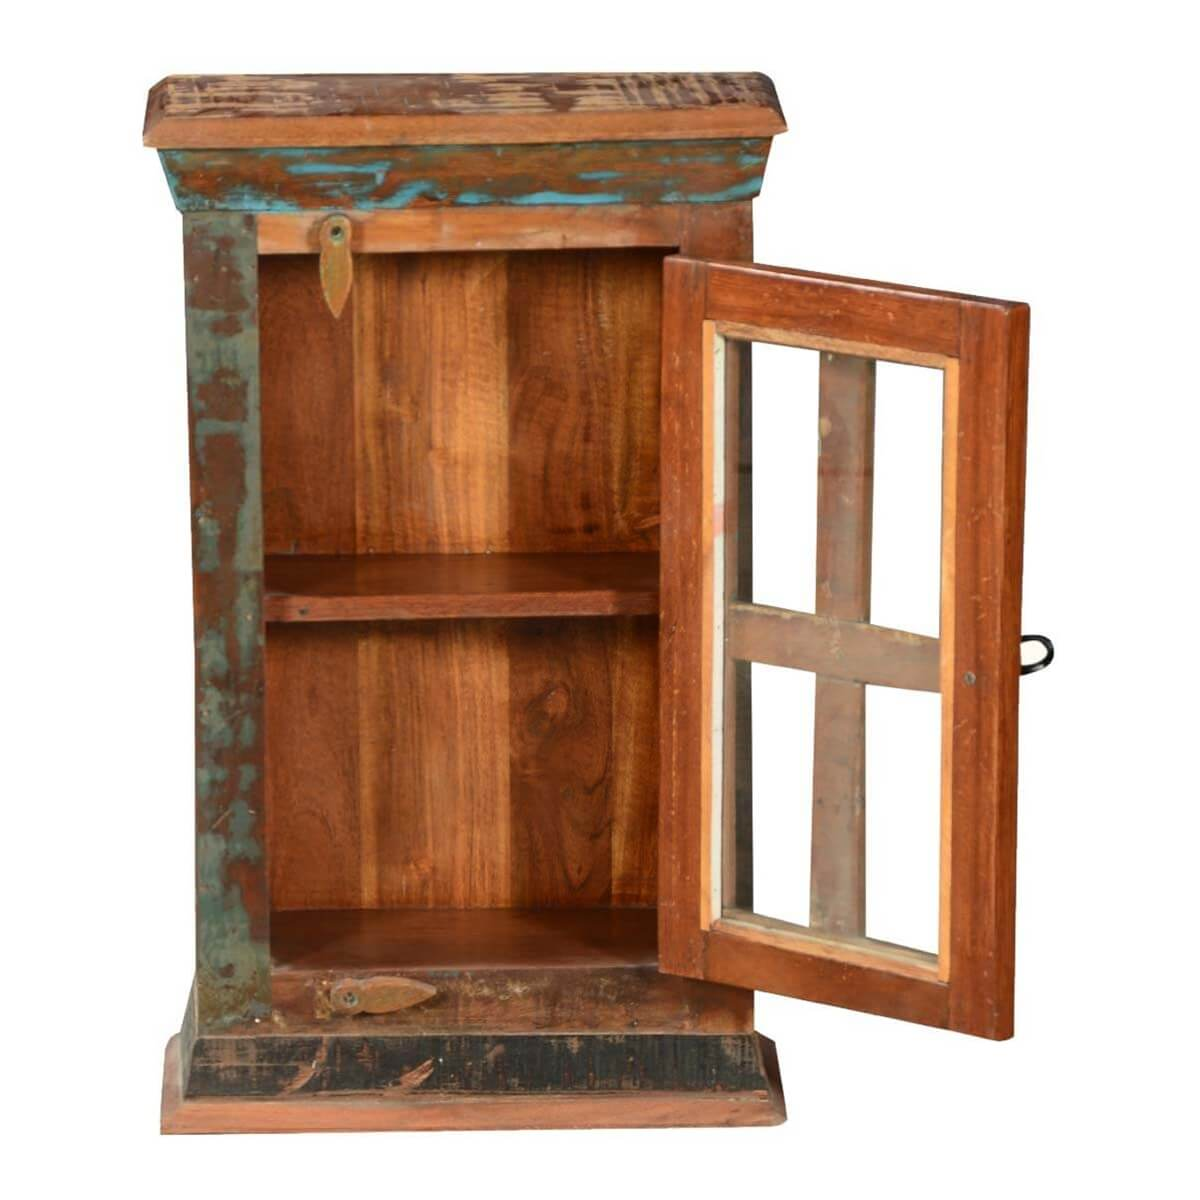 Small Glass Front Cabinet: Rustic Patches Reclaimed Wood Mini Display Cabinet W Glass